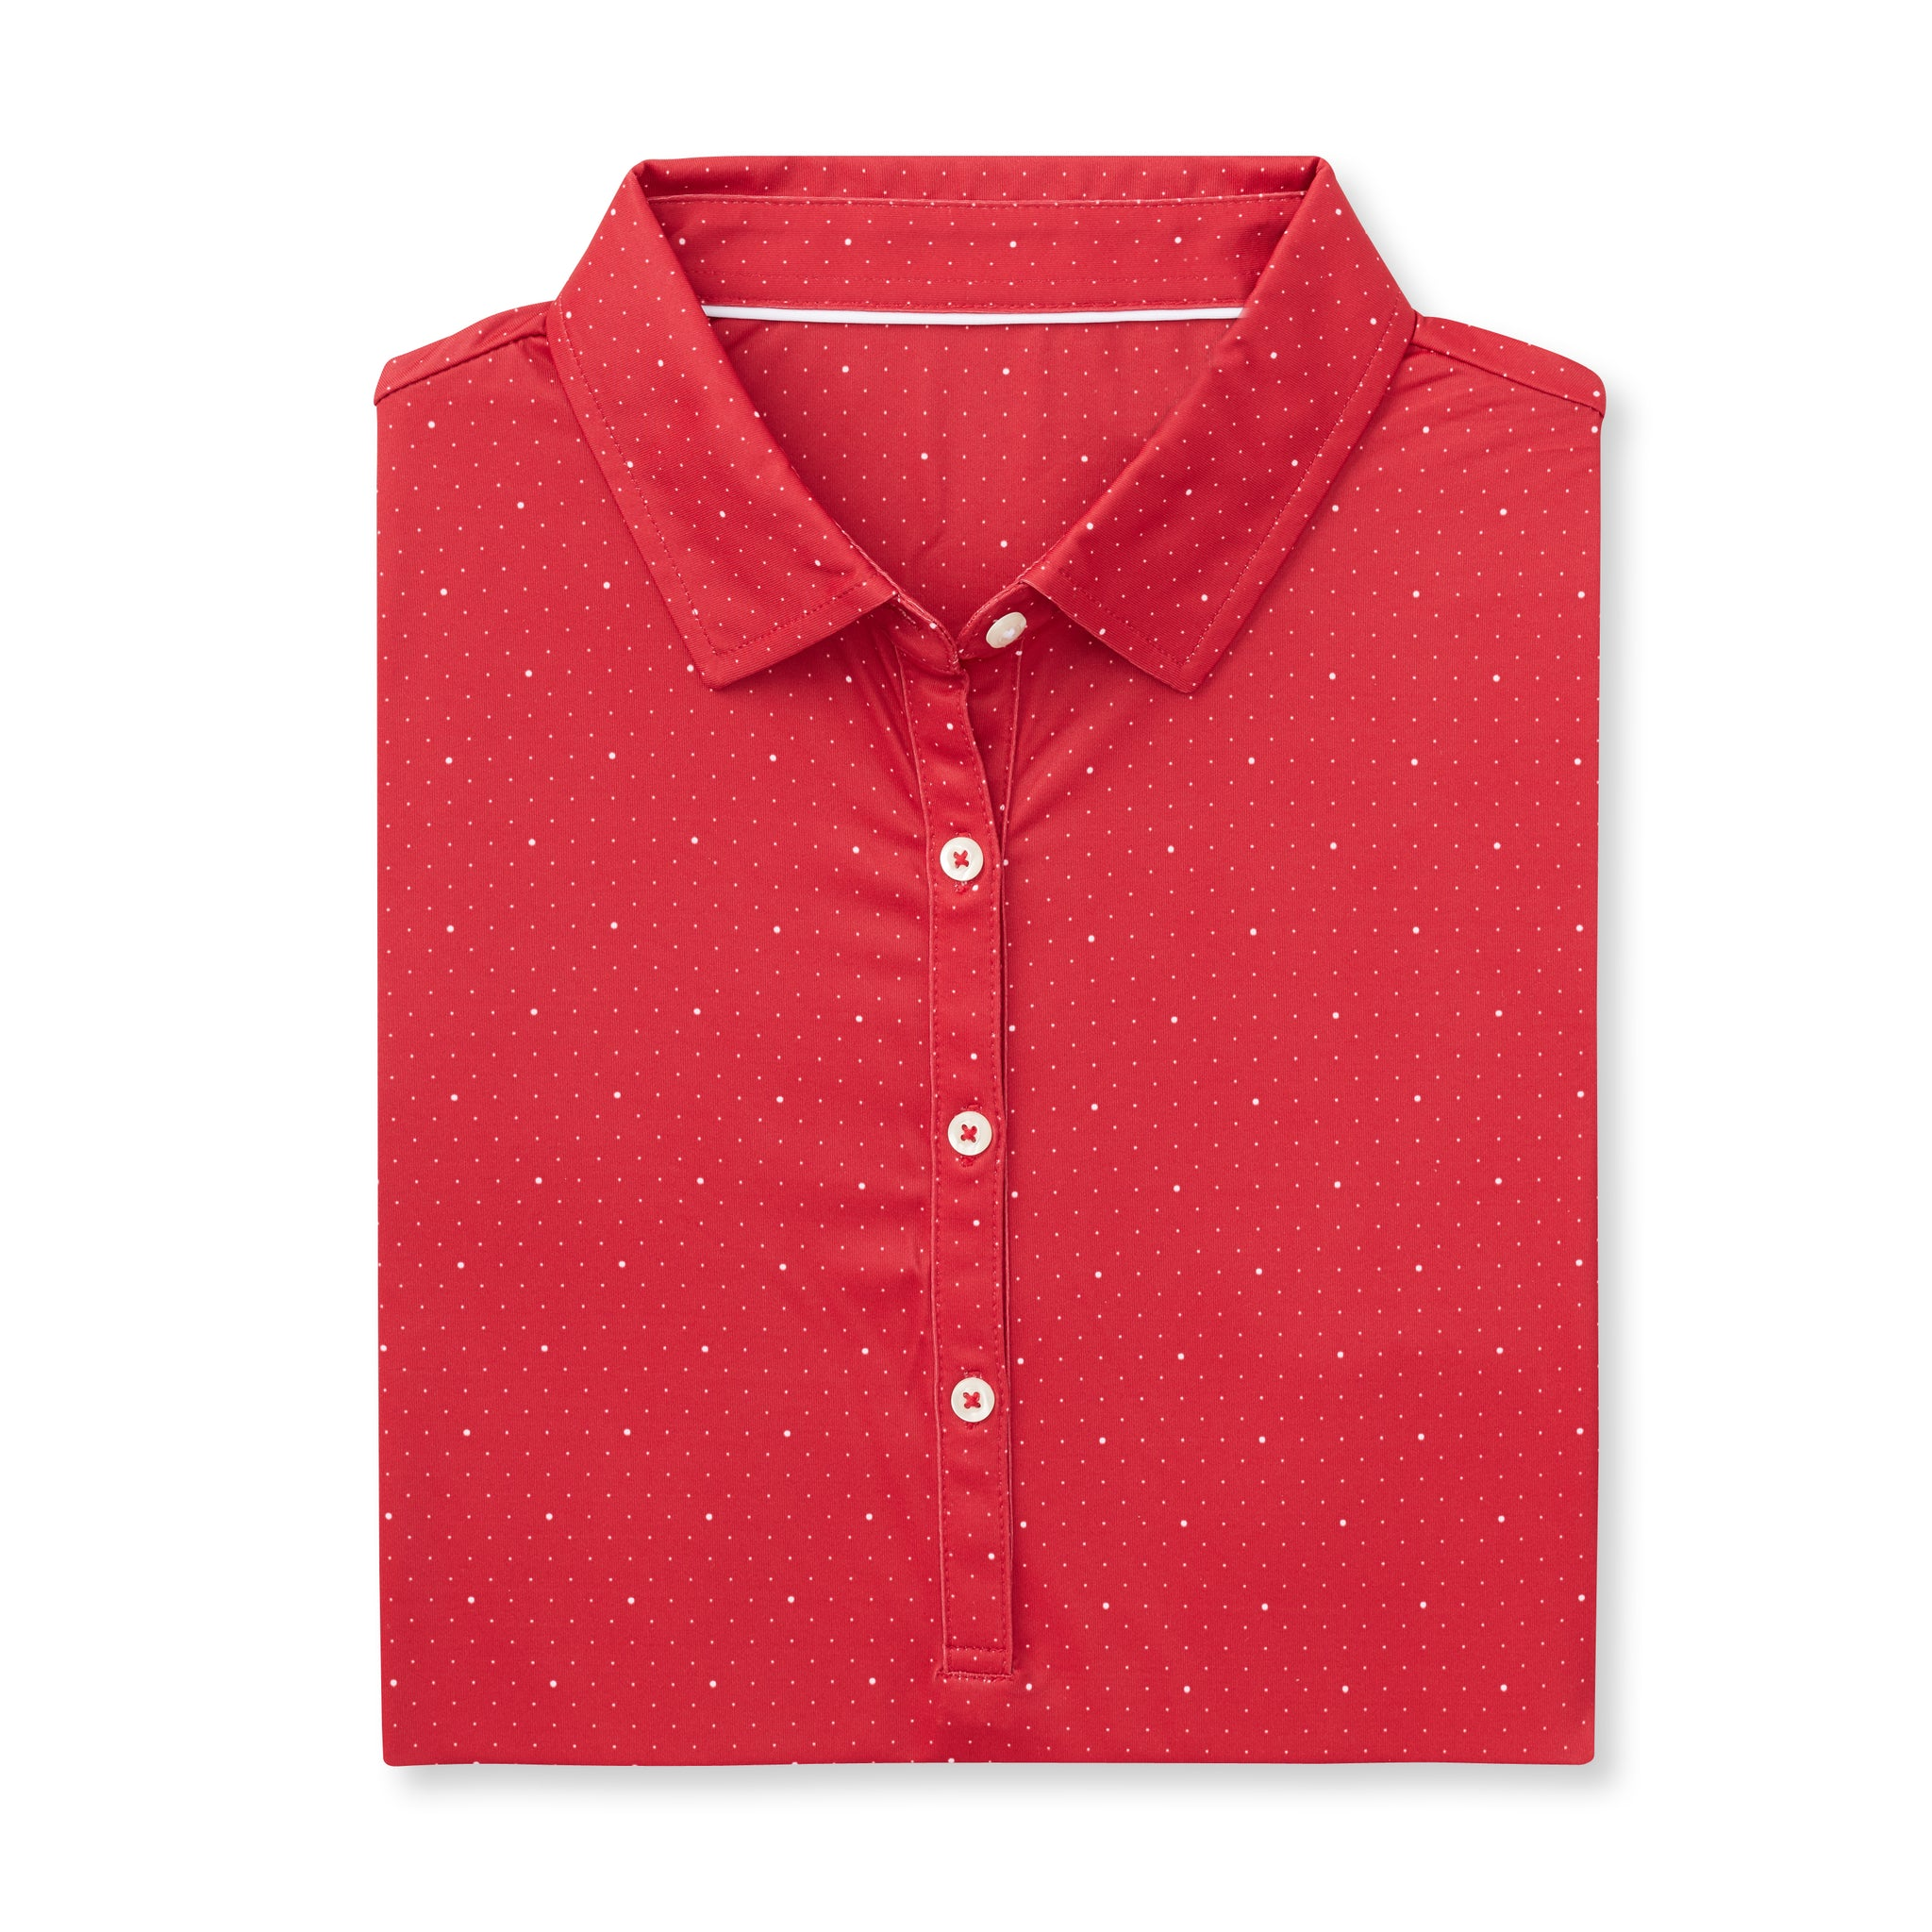 THE WOMEN'S SYWALKER POLO - Crimson/White IS76803W